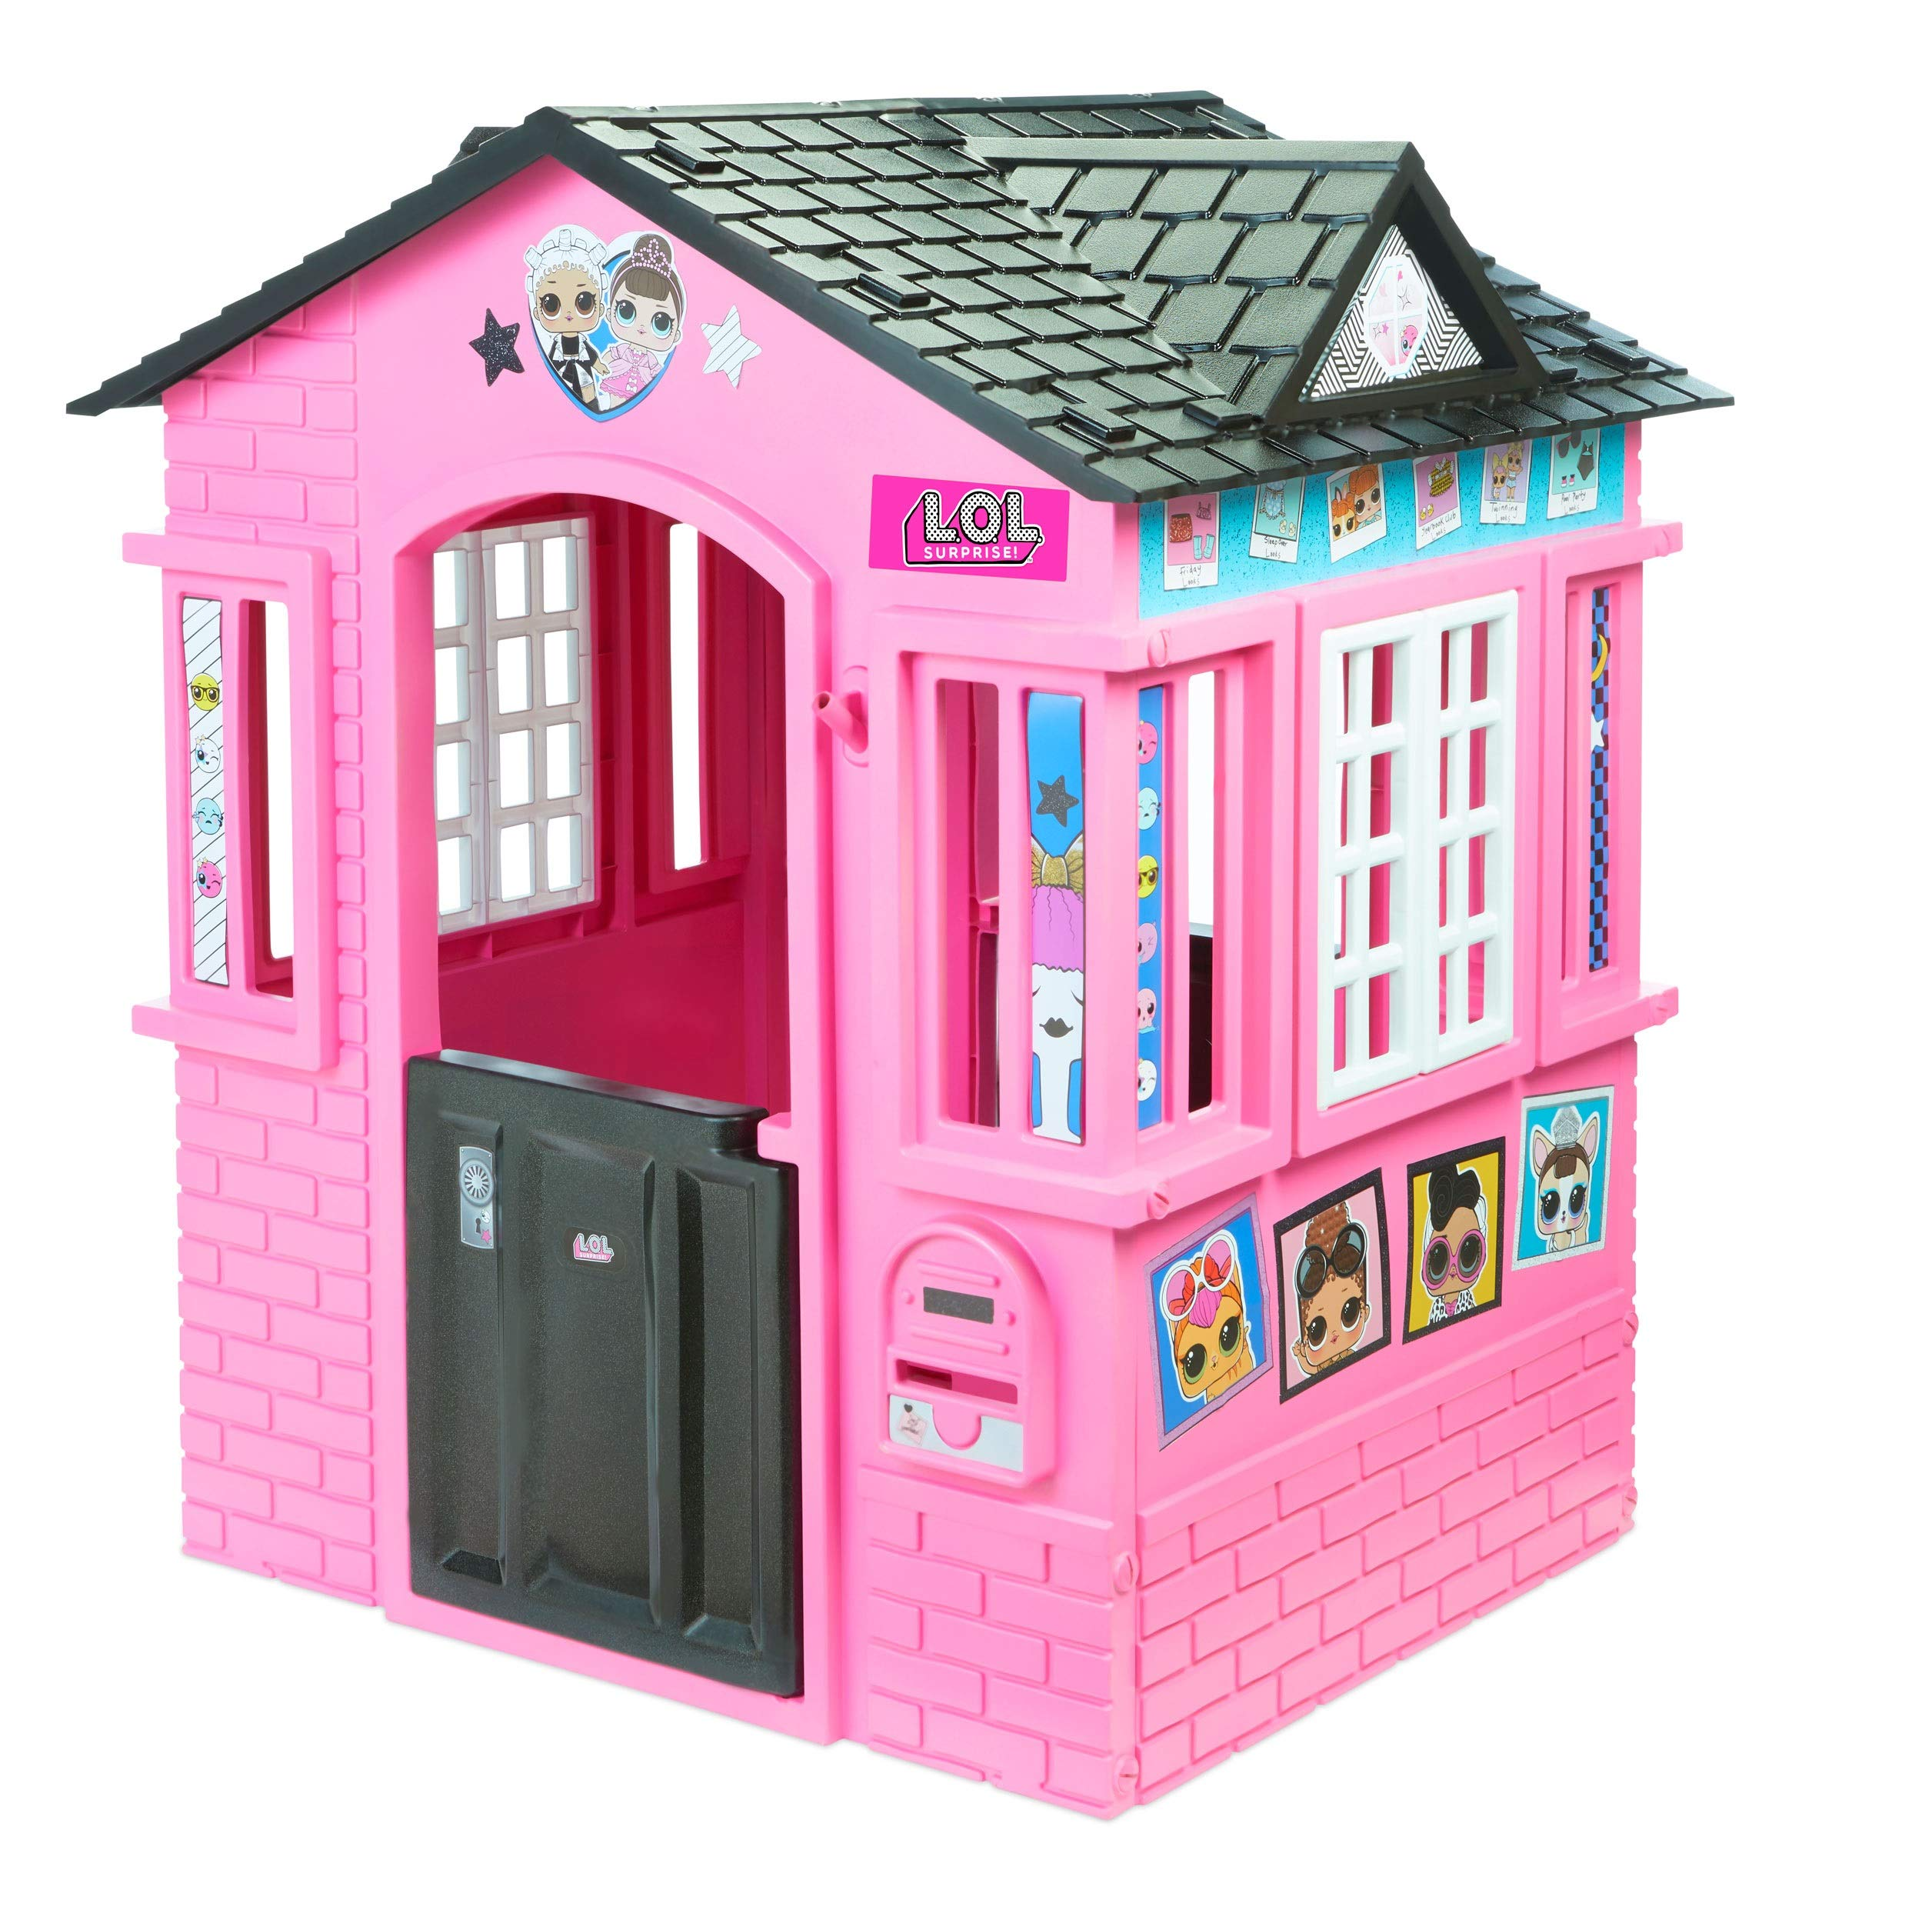 L.O.L. Surprise! Indoor & Outdoor Cottage Playhouse with Glitter by L.O.L. Surprise! (Image #1)